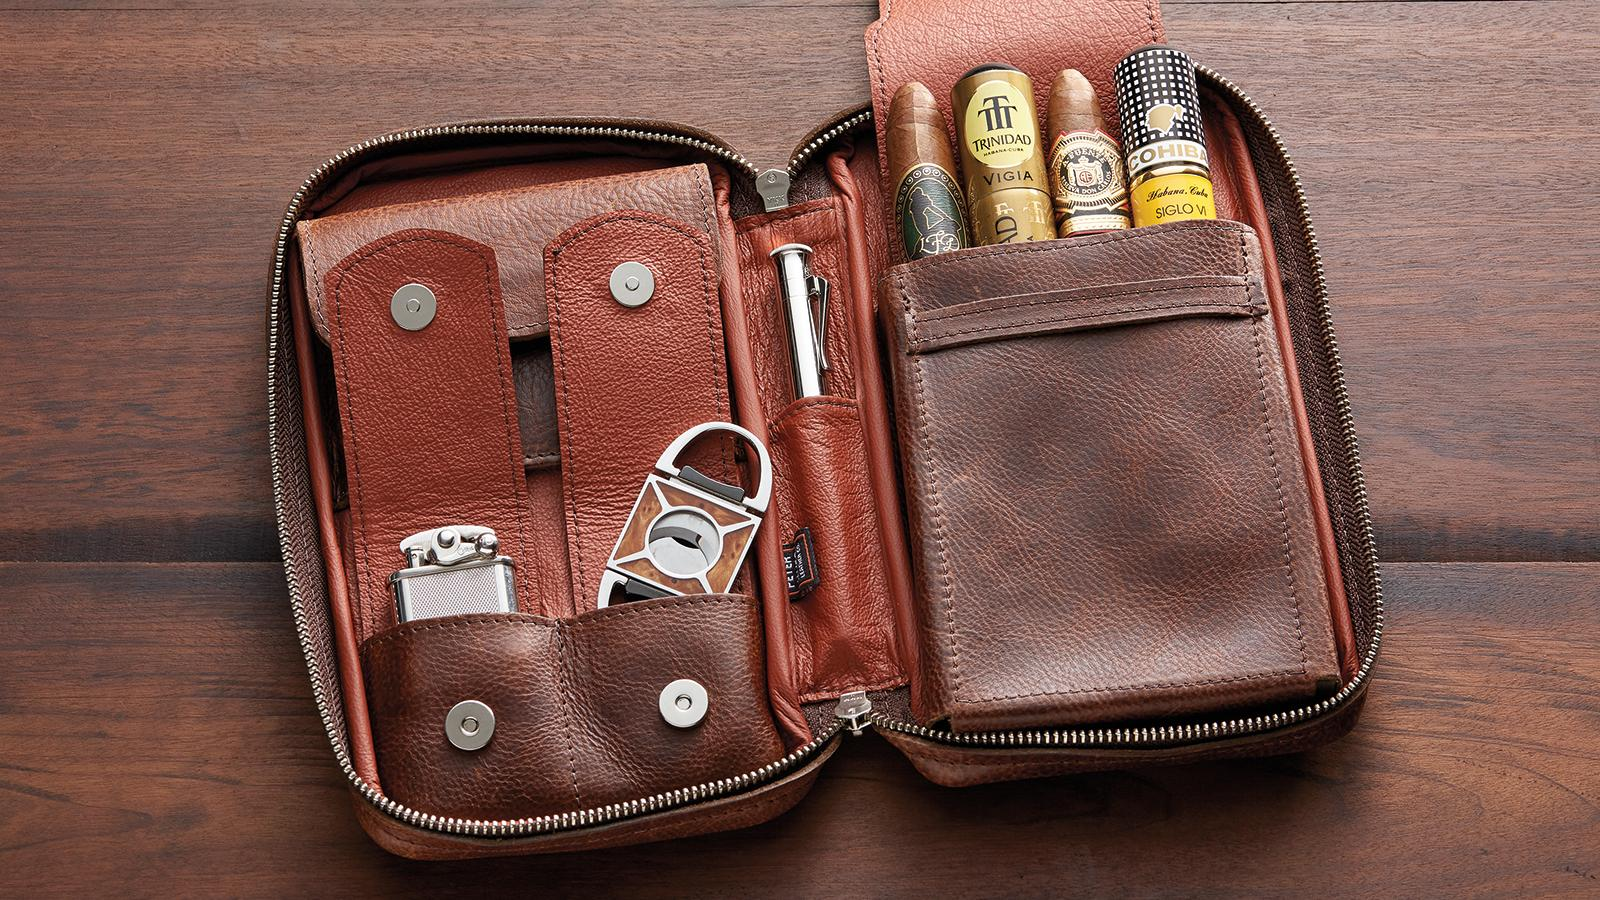 Peter James Leather Cases